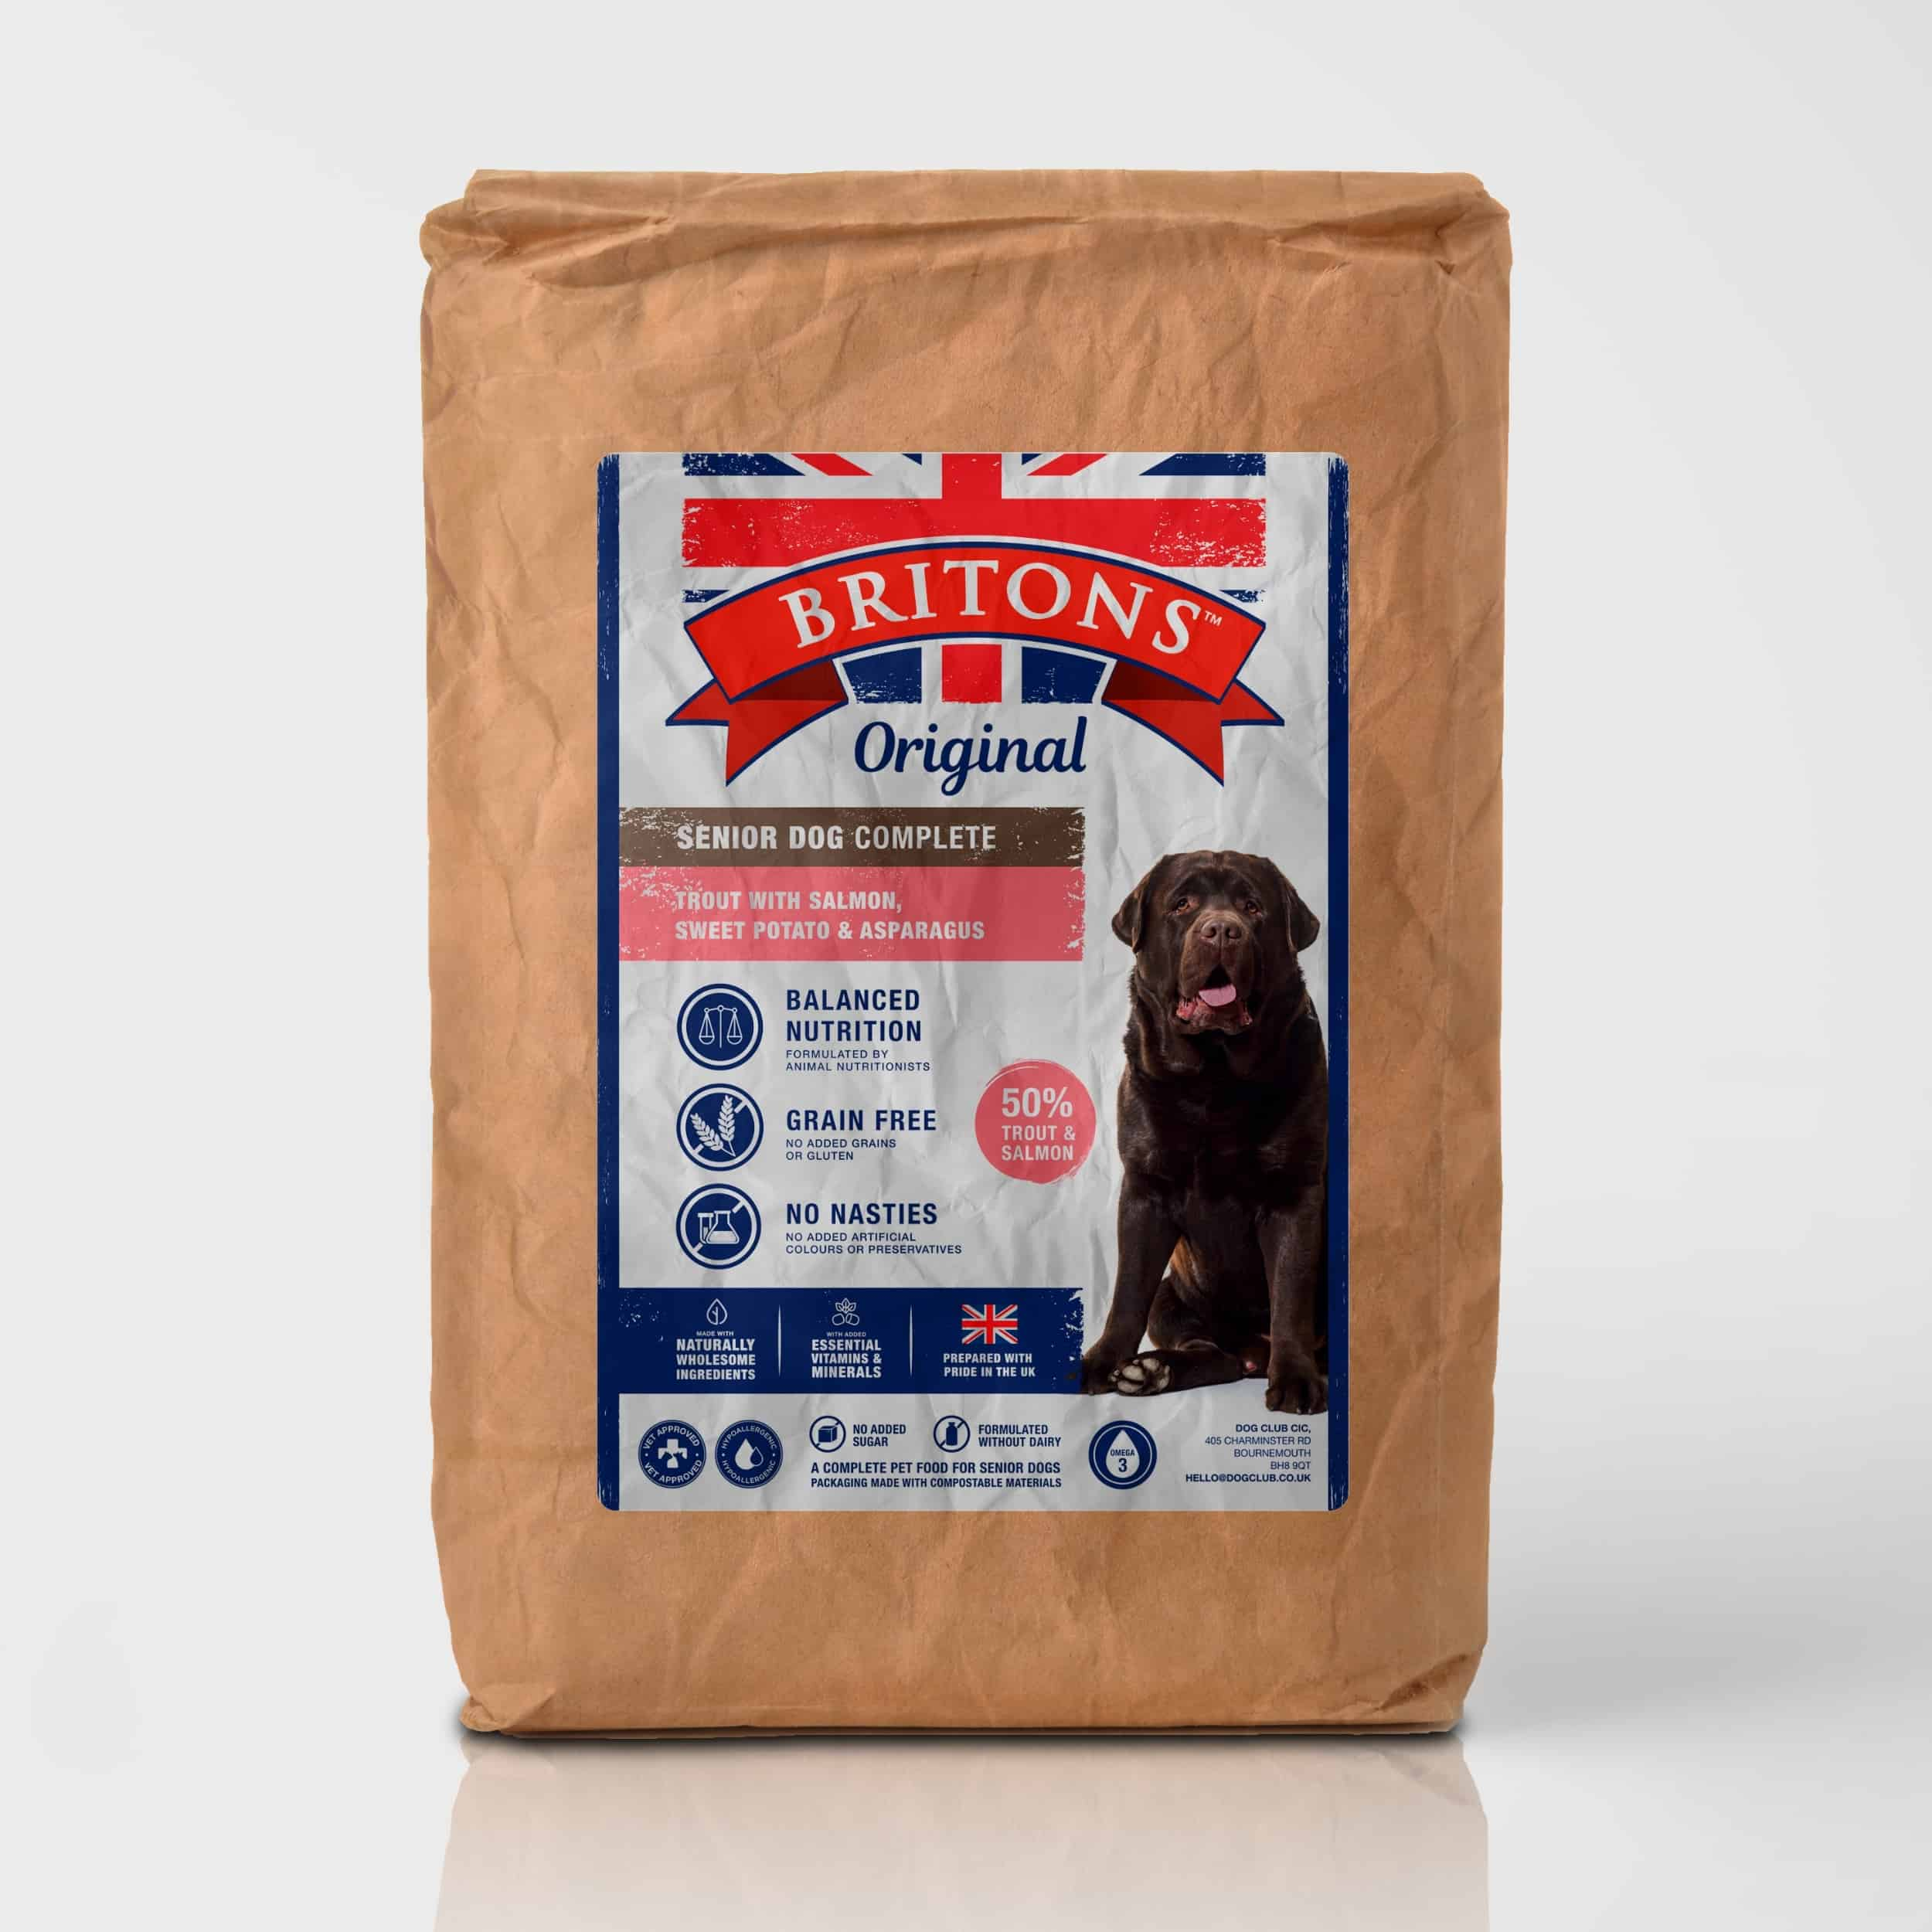 Senior dog, grain free, complete dry food. Freshly prepared Trout with Salmon, Sweet Potato & Asparagus. Britons Original.